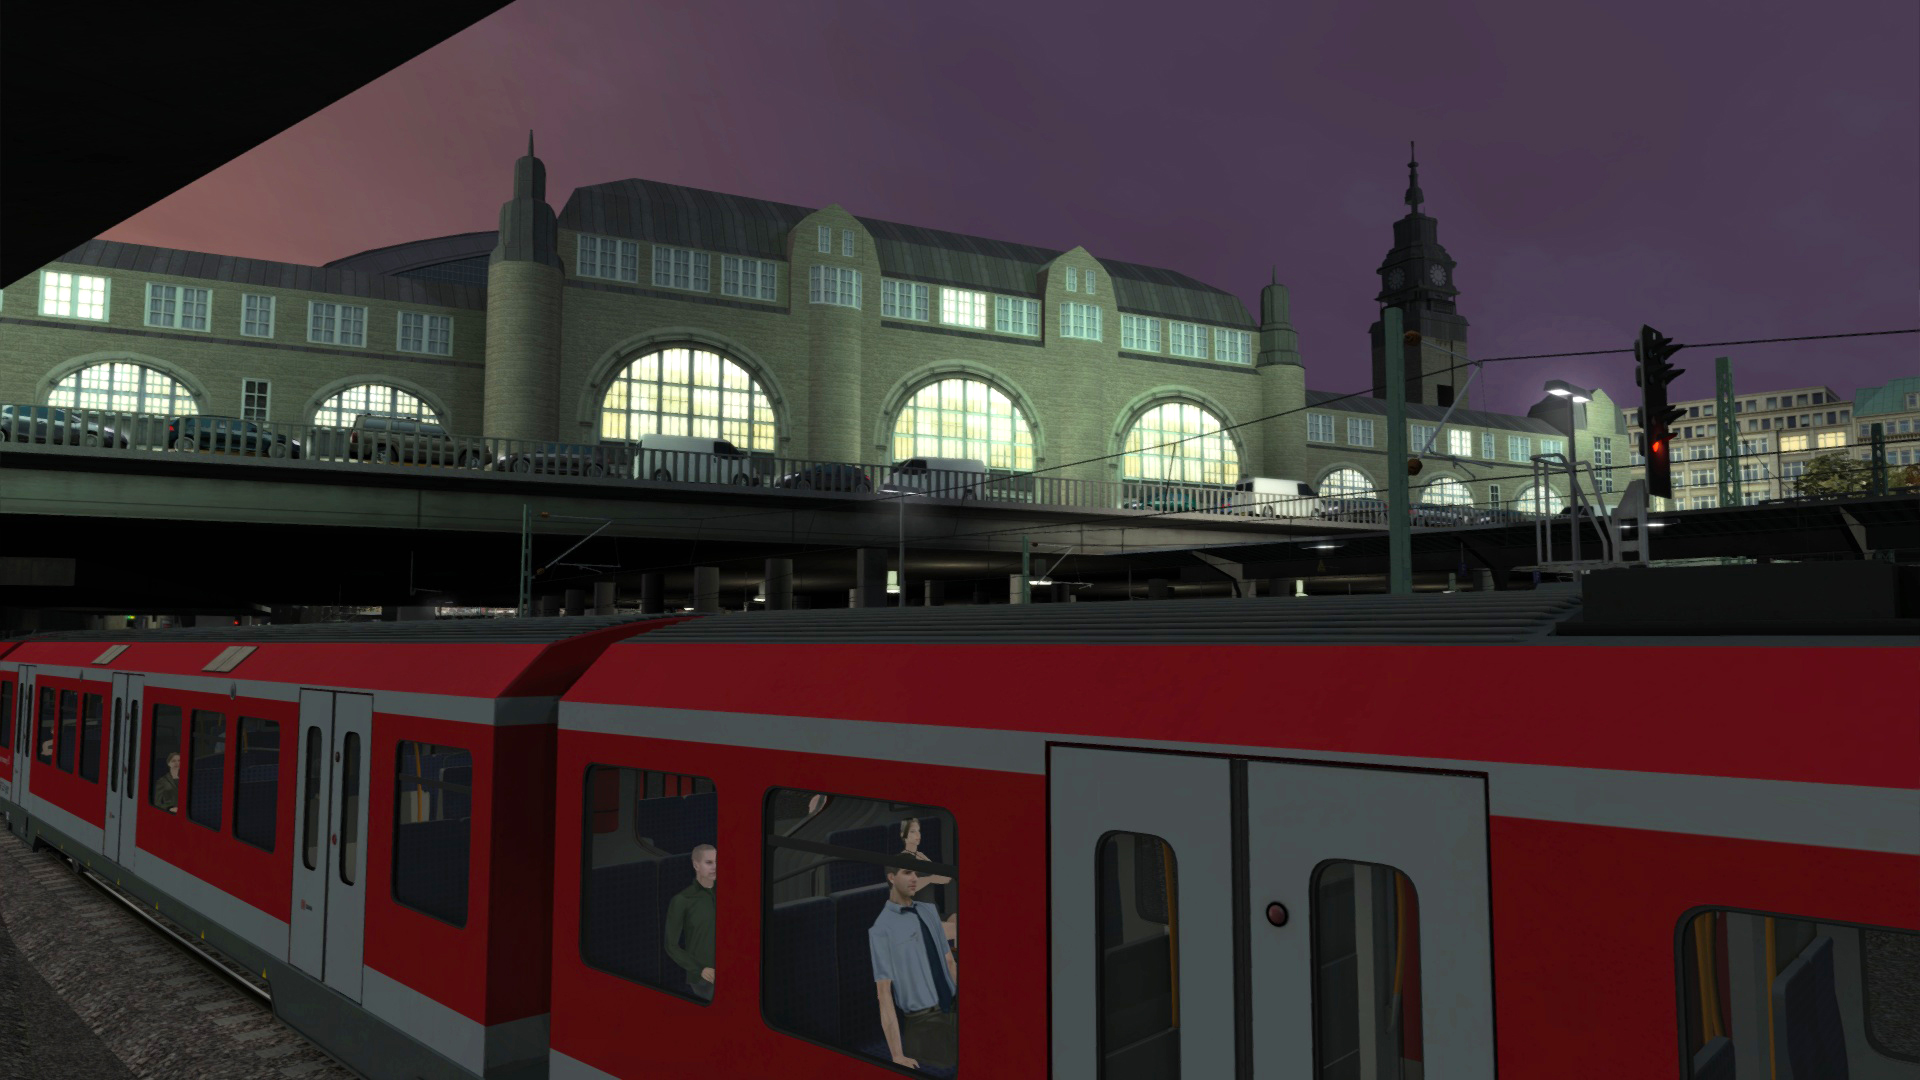 S-bahn Plan Von Hamburg Train Simulator Hamburg S1 S Bahn Route Add On